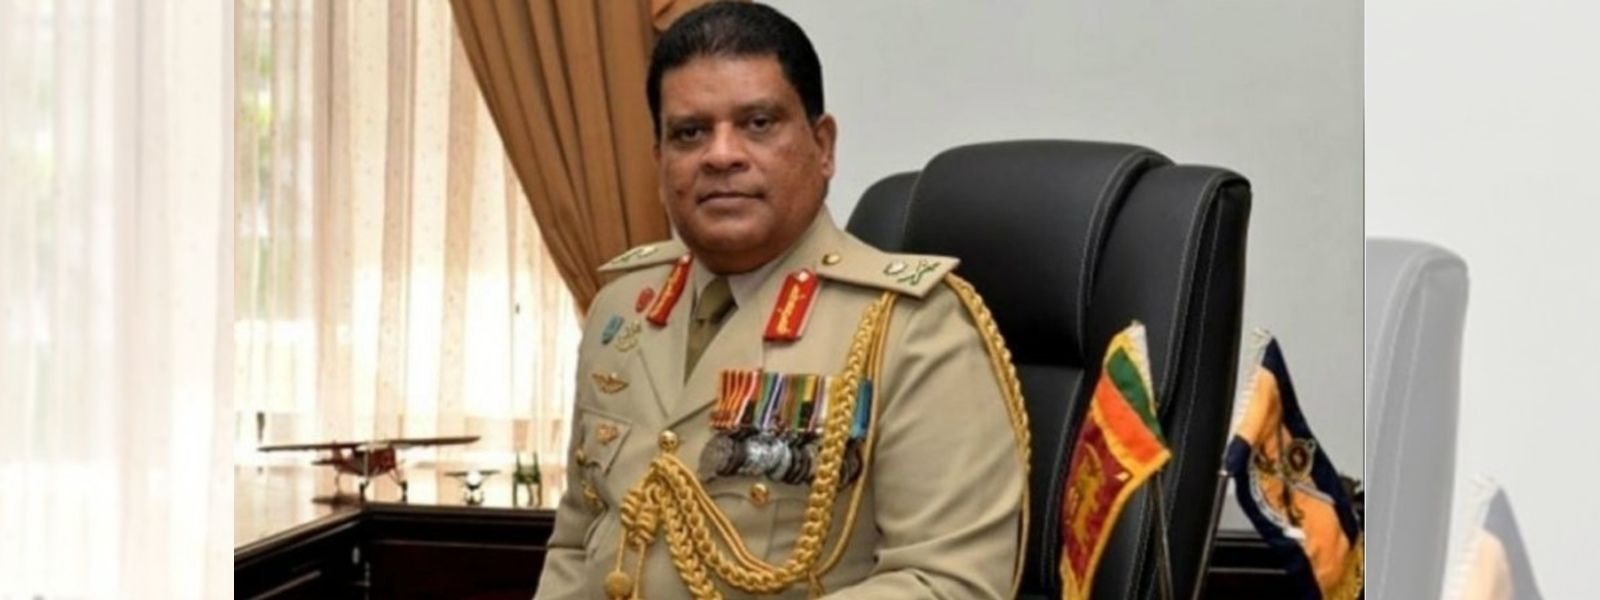 Public should assist in controlling the spread of COVID-19: Lt. General Shavendra Silva